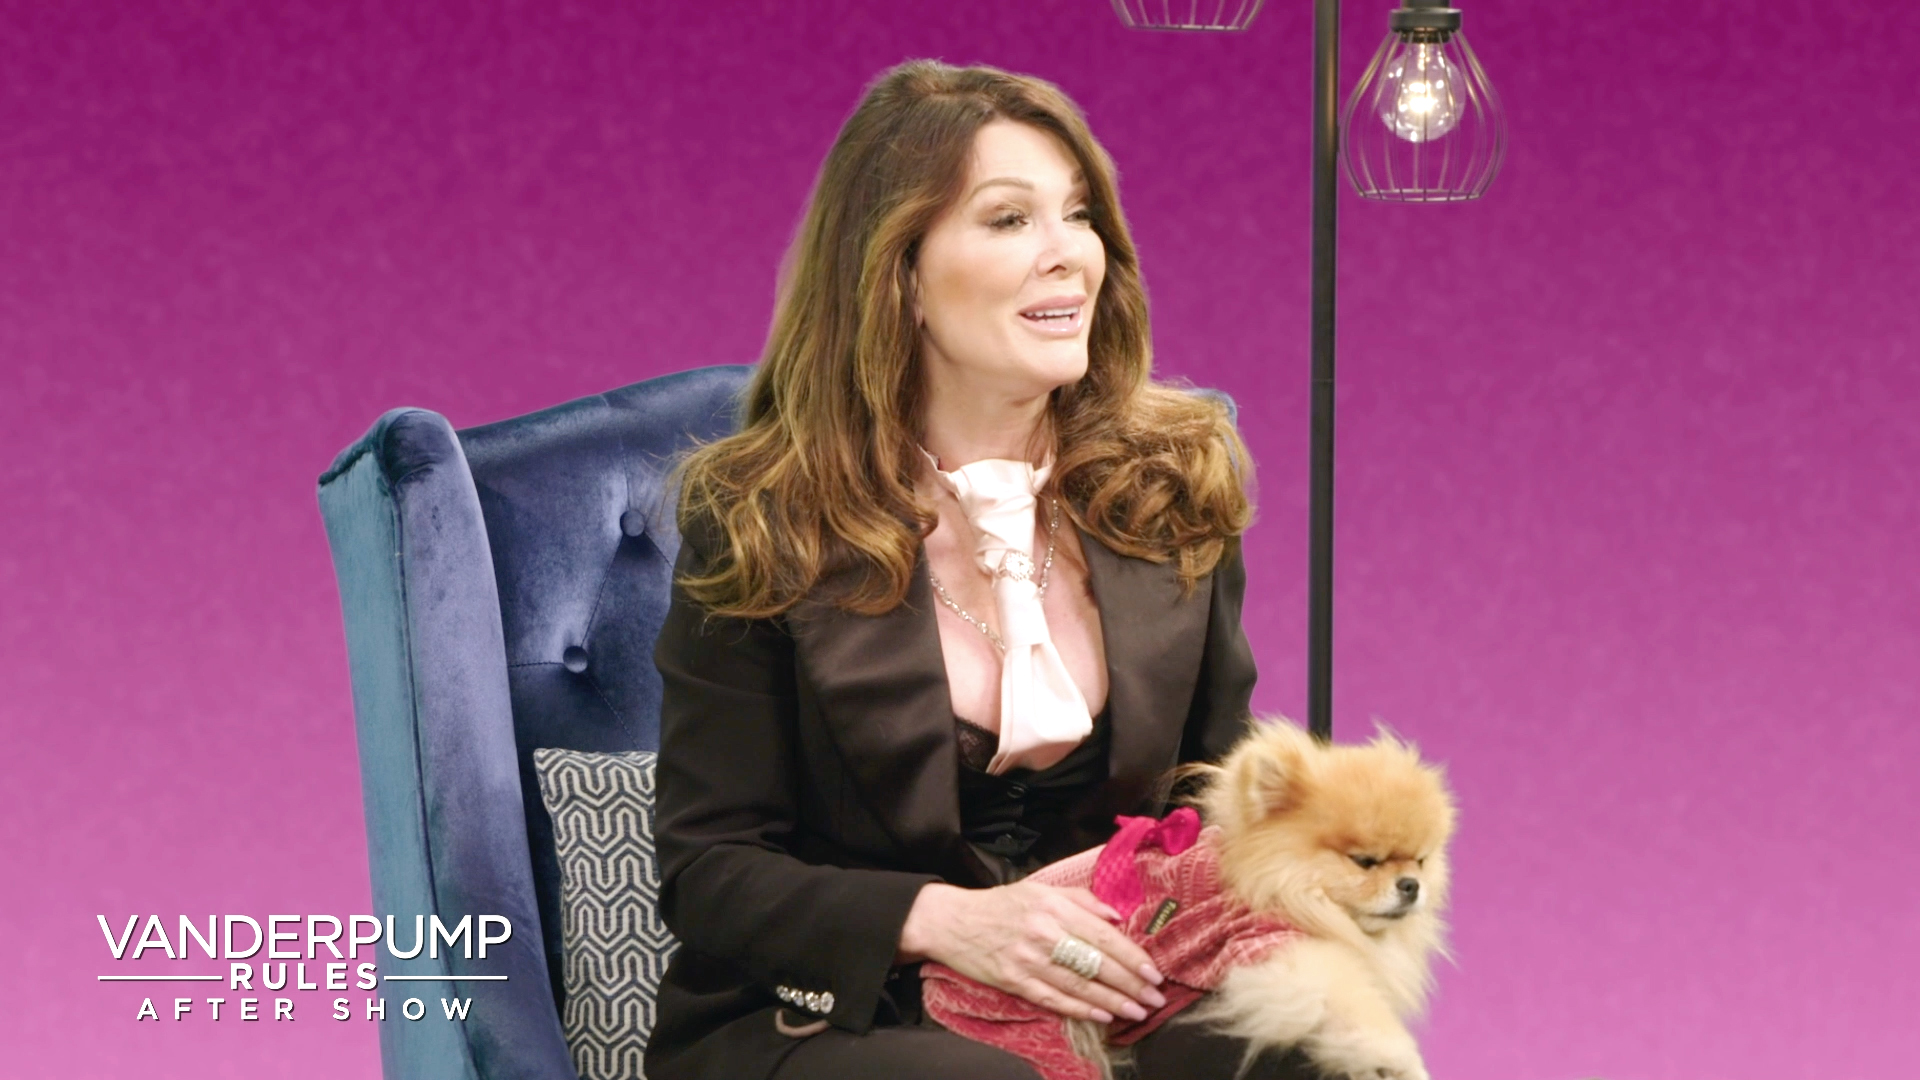 Lisa Vanderpump's Message to Brett Caprioni: Don't Touch What You Can't Afford